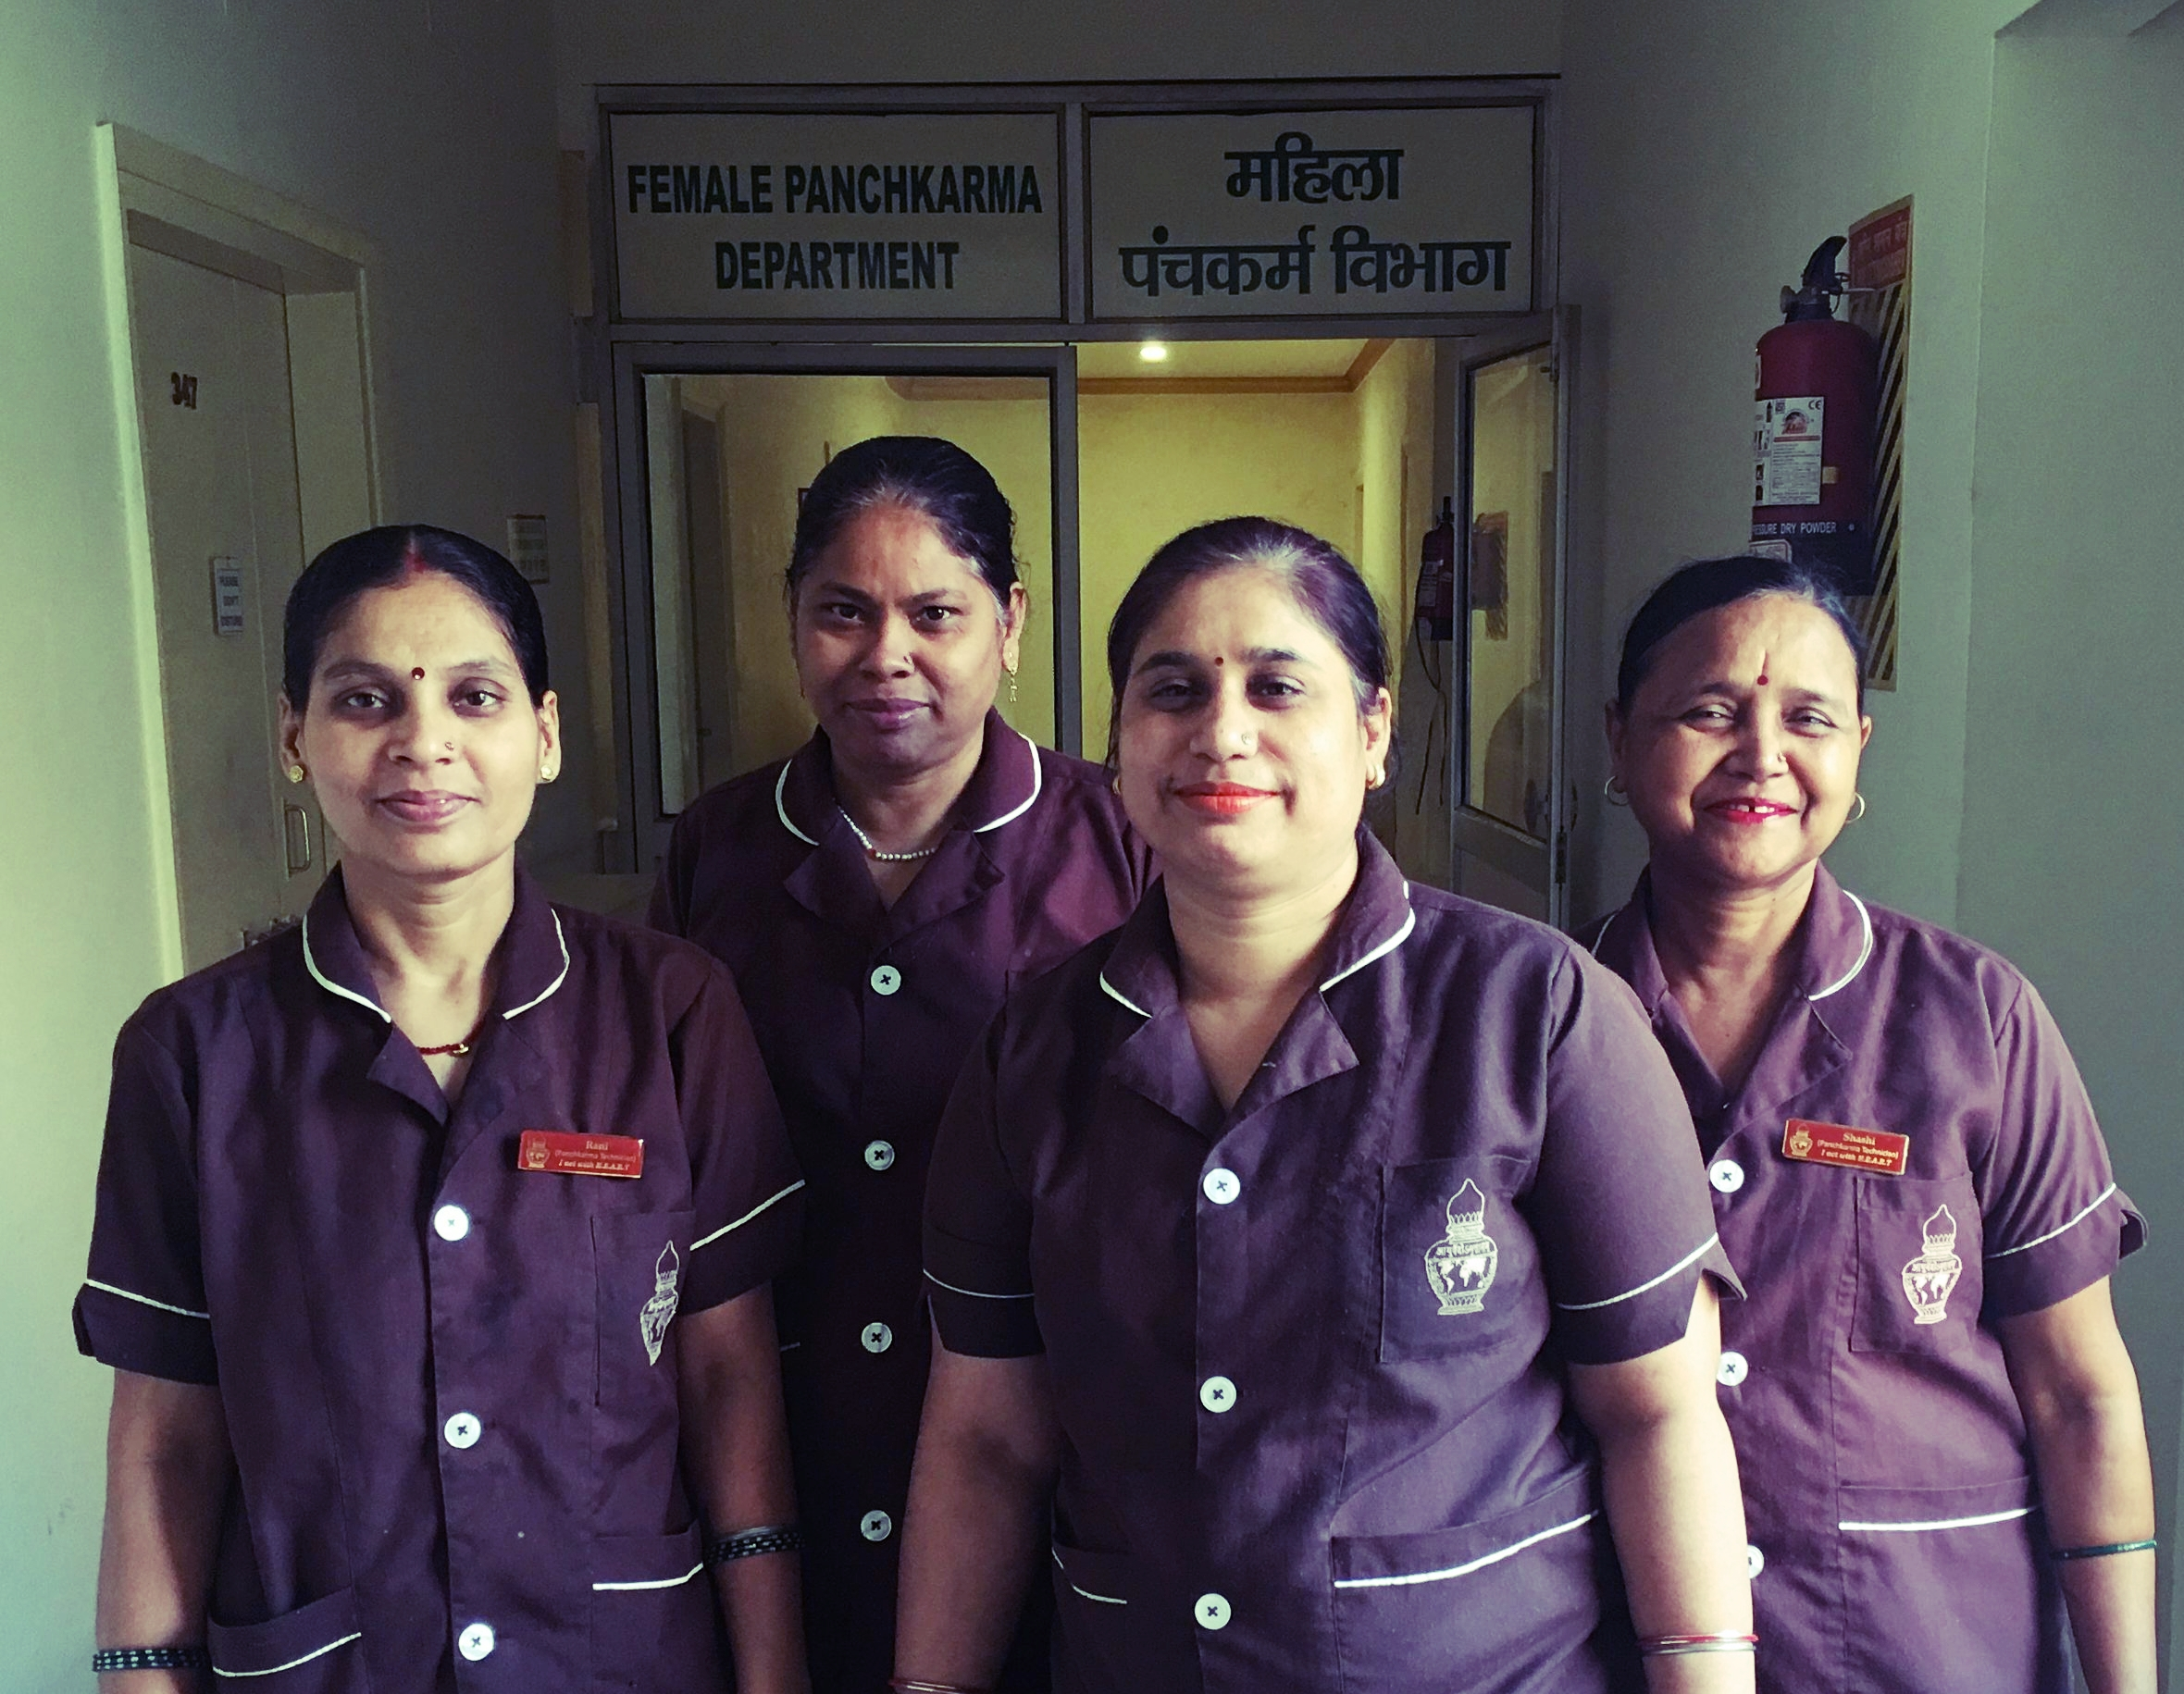 My beautiful technicians- Rani, Sunita, Jyoti and Shashi.